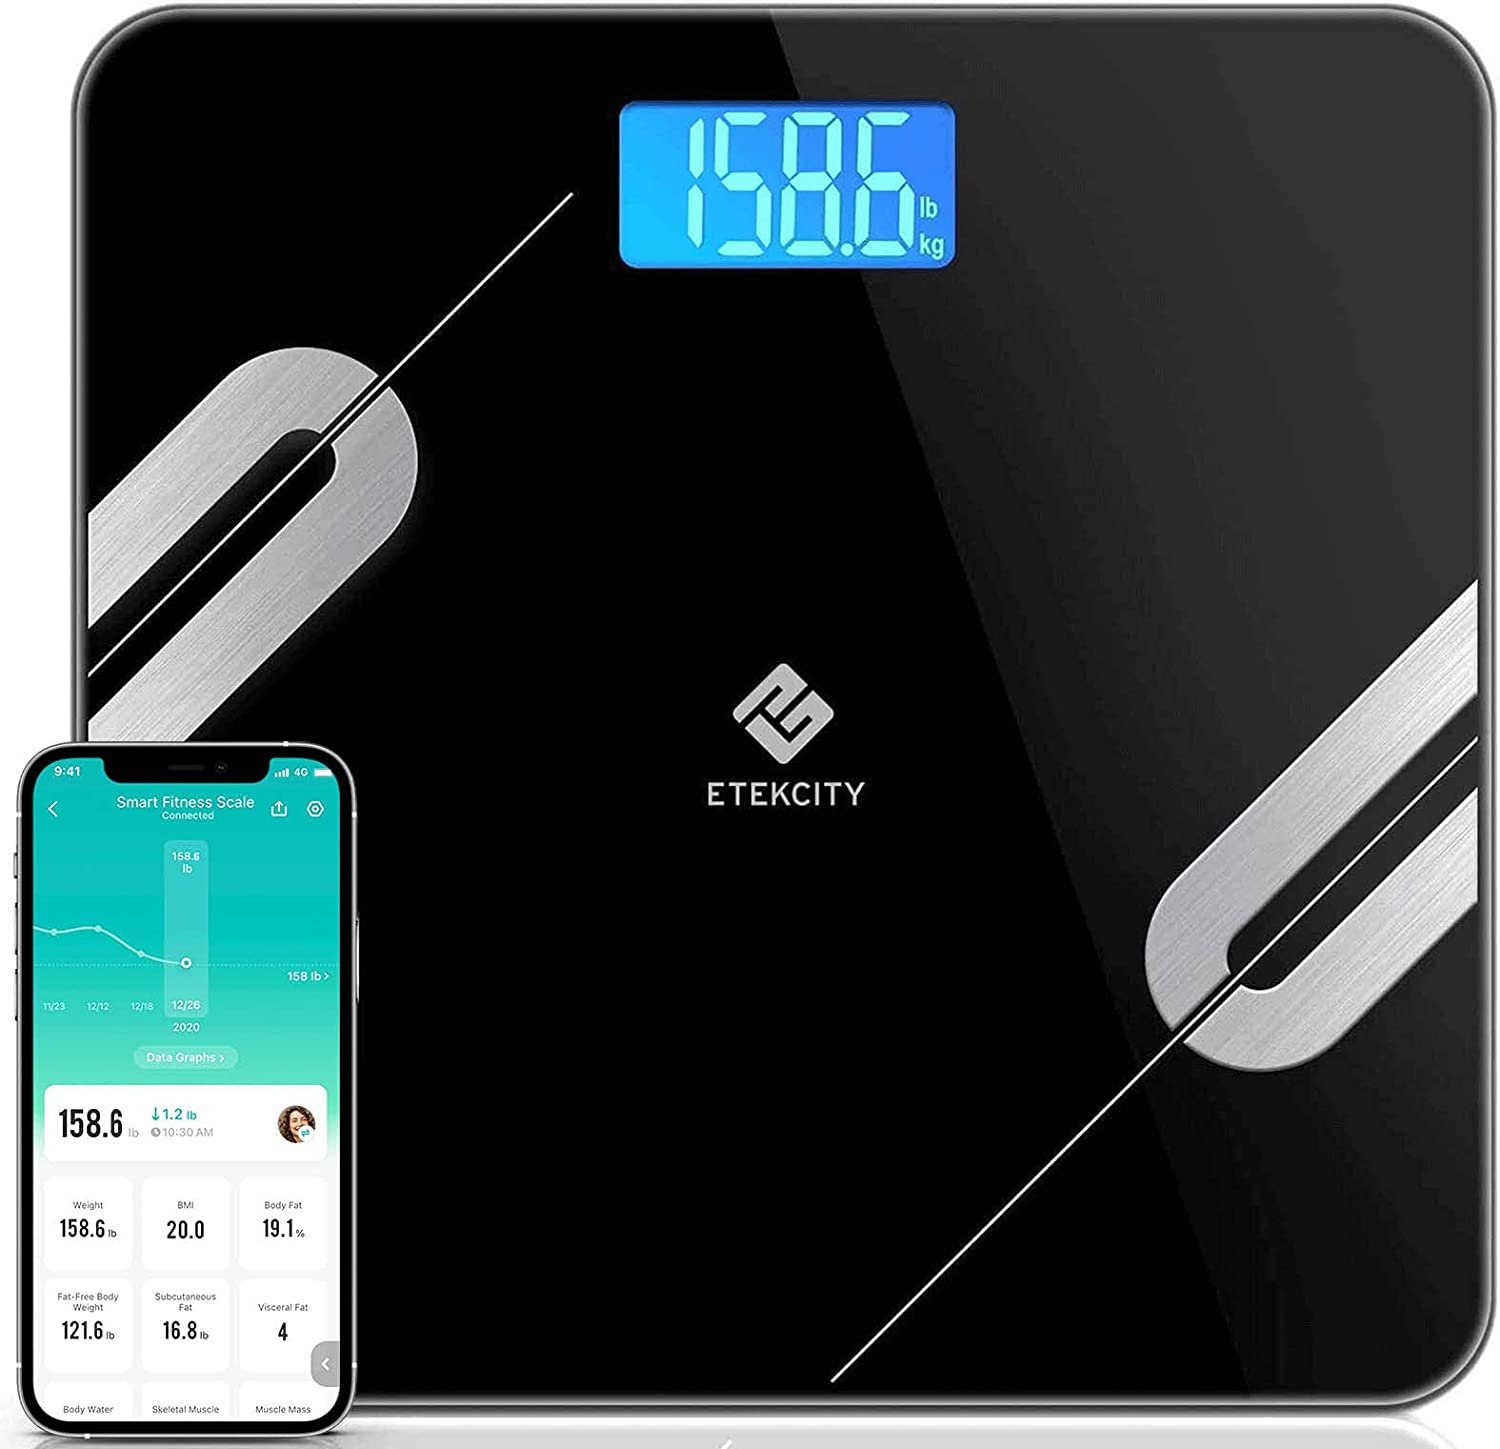 Etekcity Smart Digital Bathroom Scale Scales for Weight Time sale Finally resale start an Body